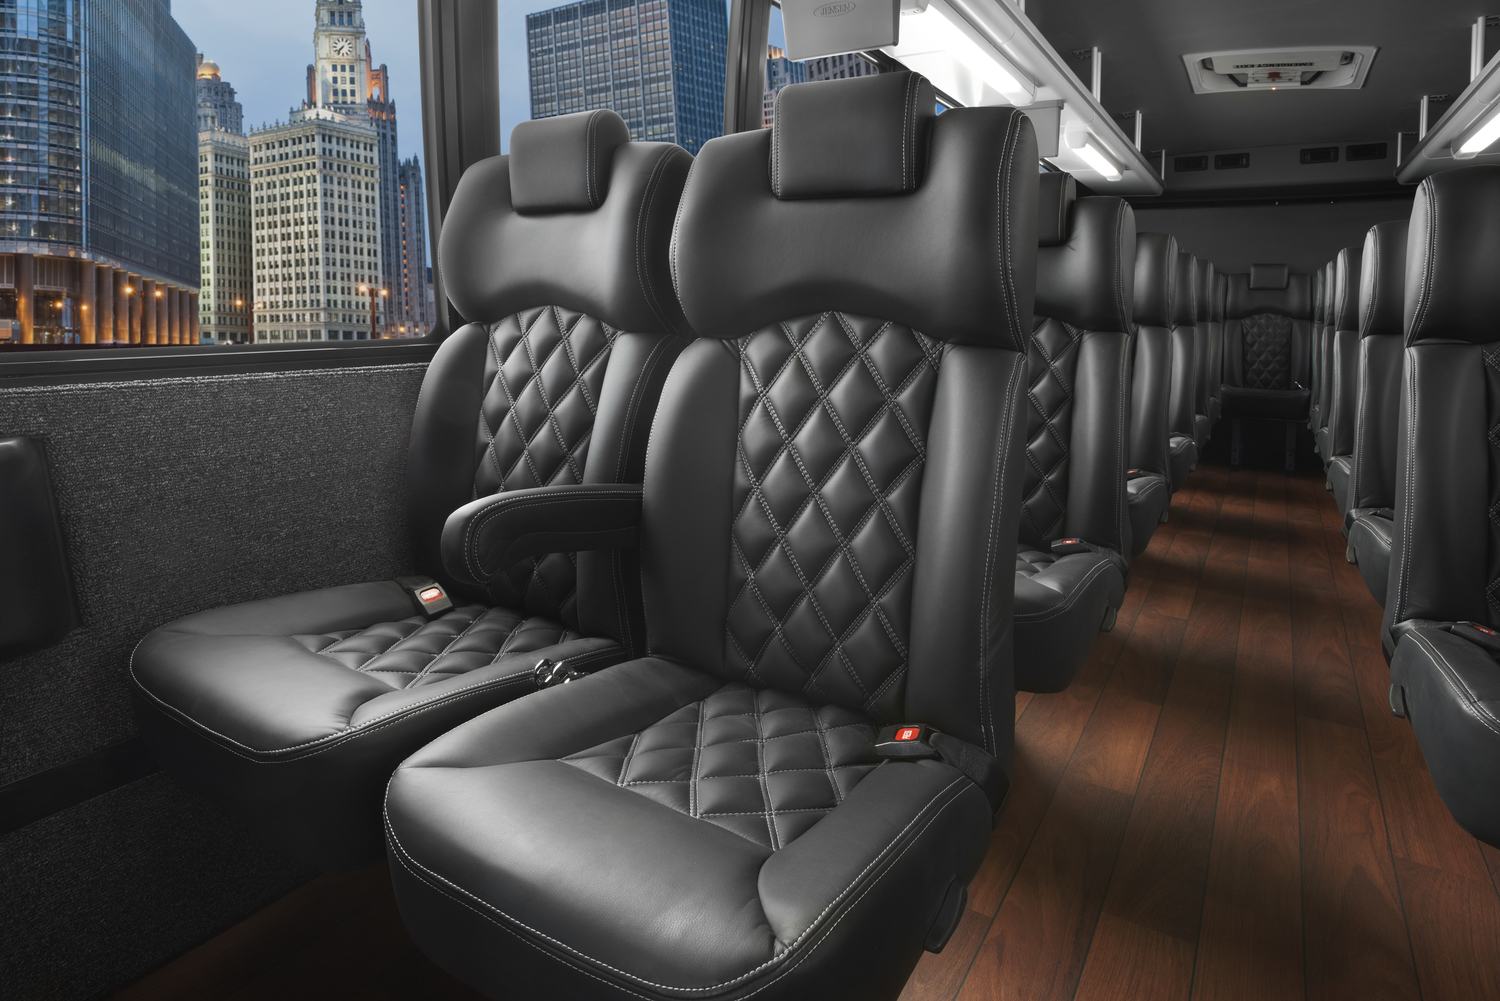 executive-shuttle-bus-interior-2